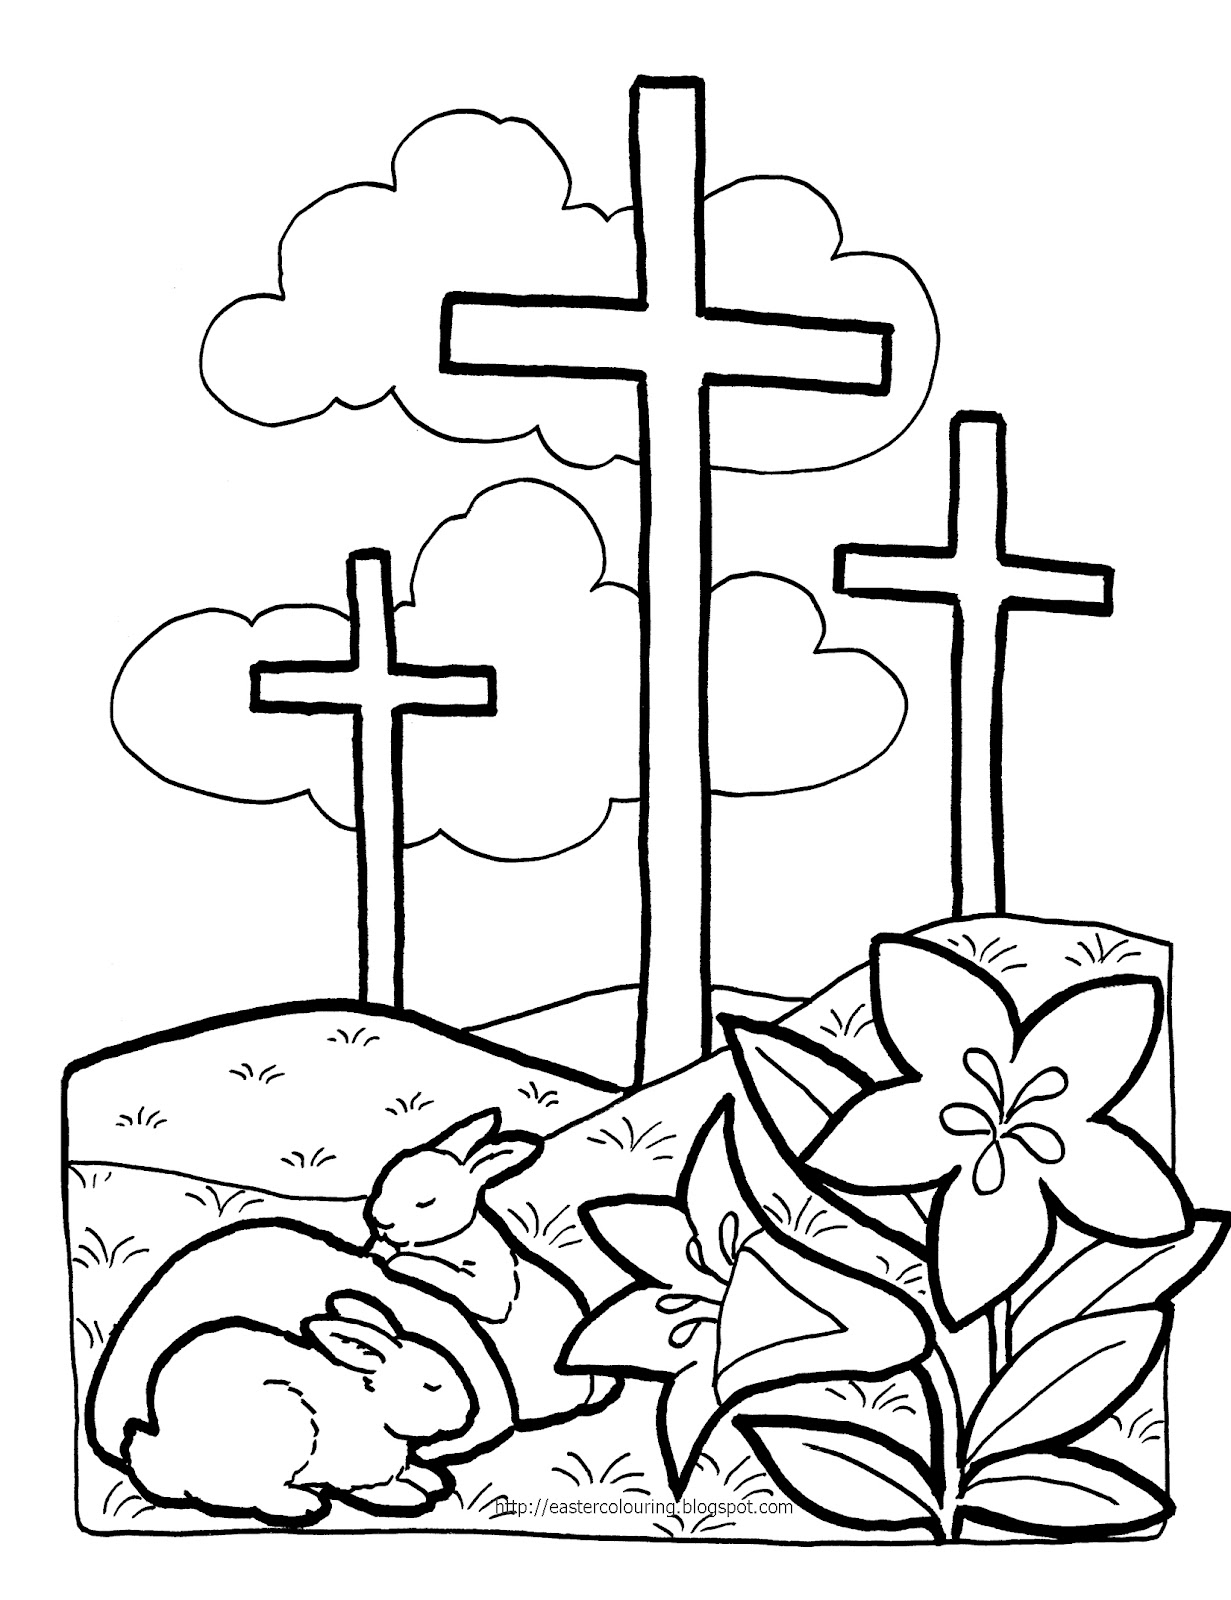 church coloring pages for children - photo#43